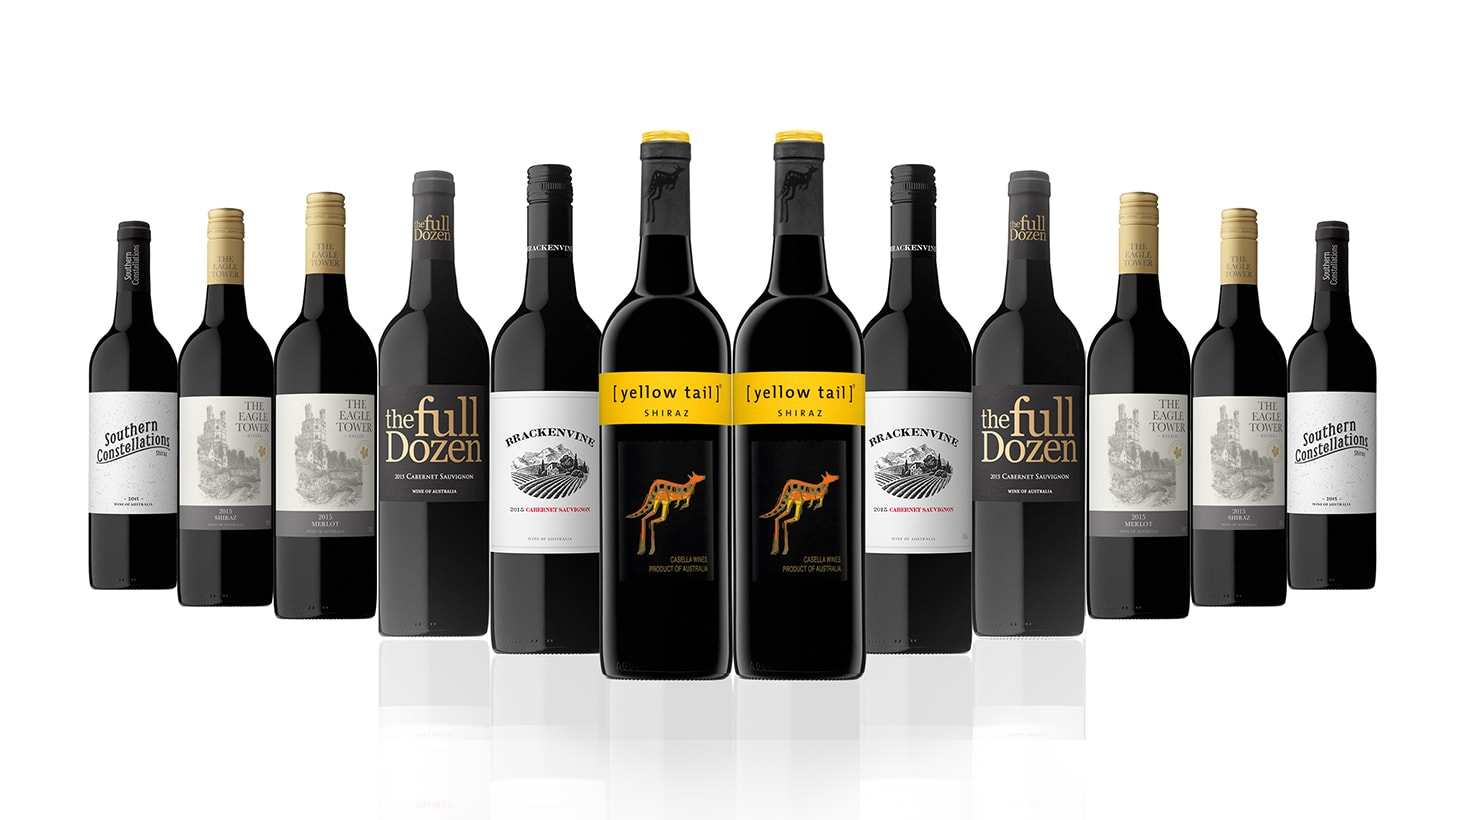 Save $130 on a Case of 12 Mystery Red Wines, Delivered to Your Door! Coffee and Wine Co Online Redemption